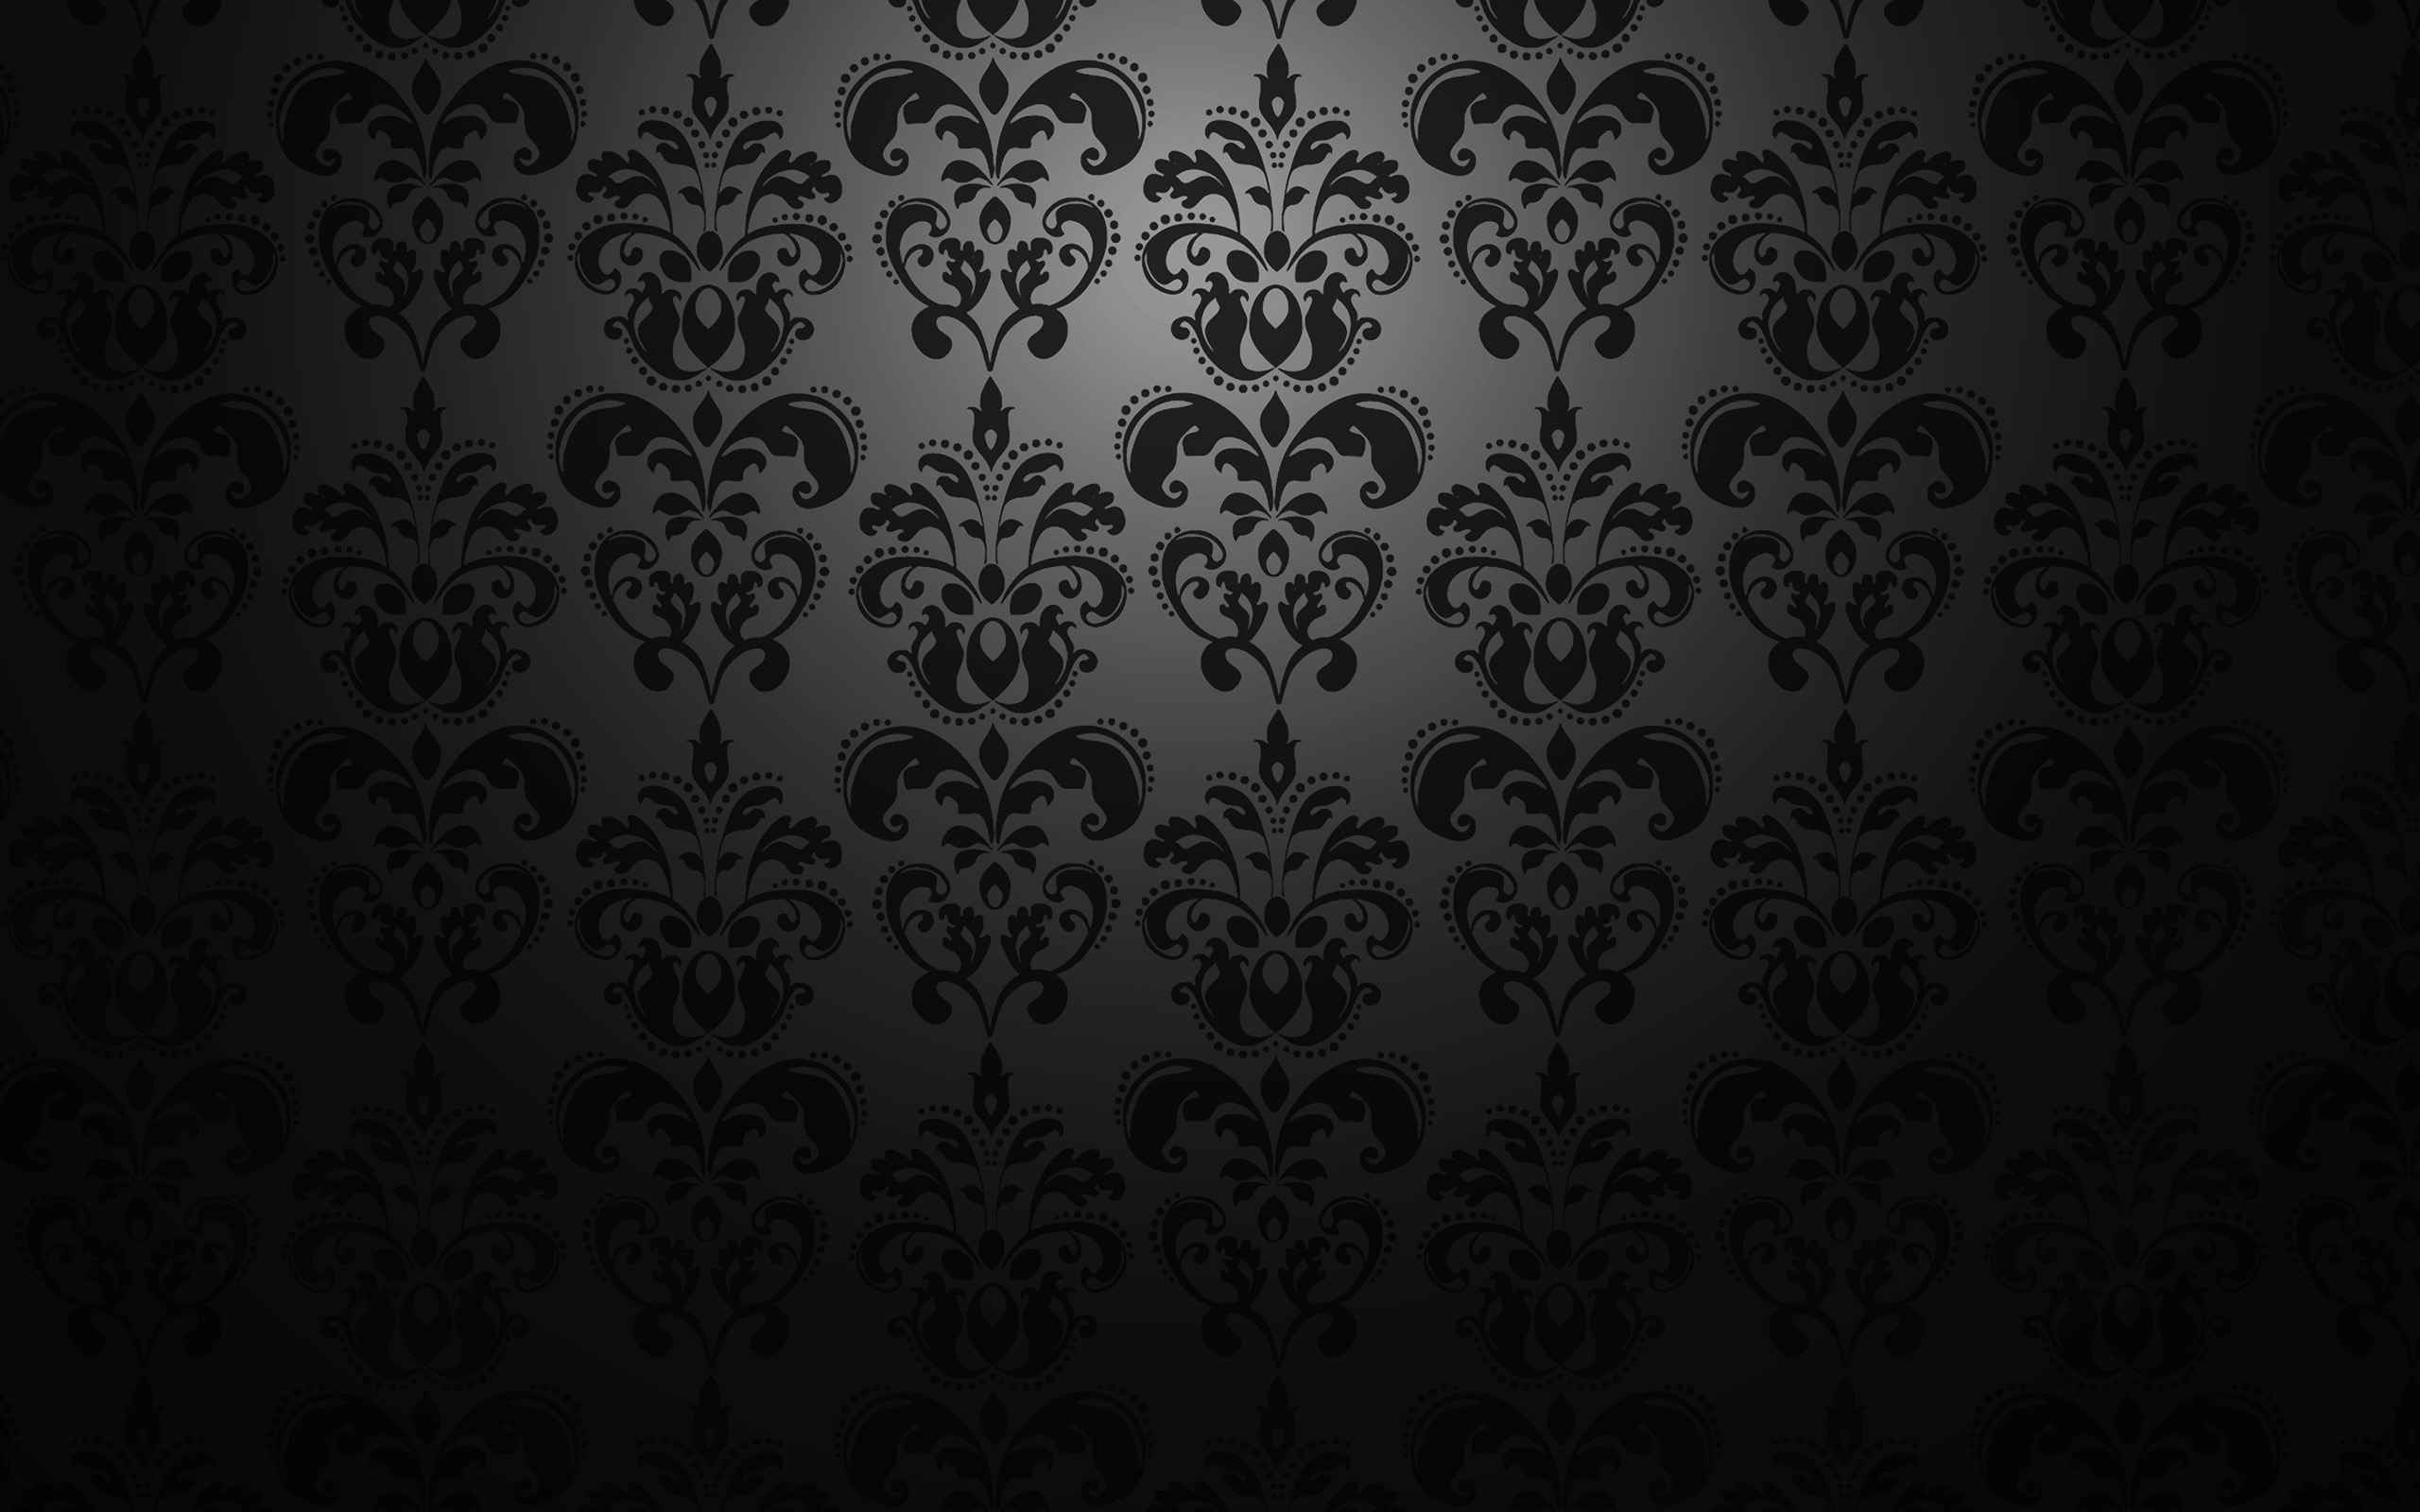 Alpha Coders Wallpaper Abyss Pattern Wallpaper 78279Gothic Floral Pattern